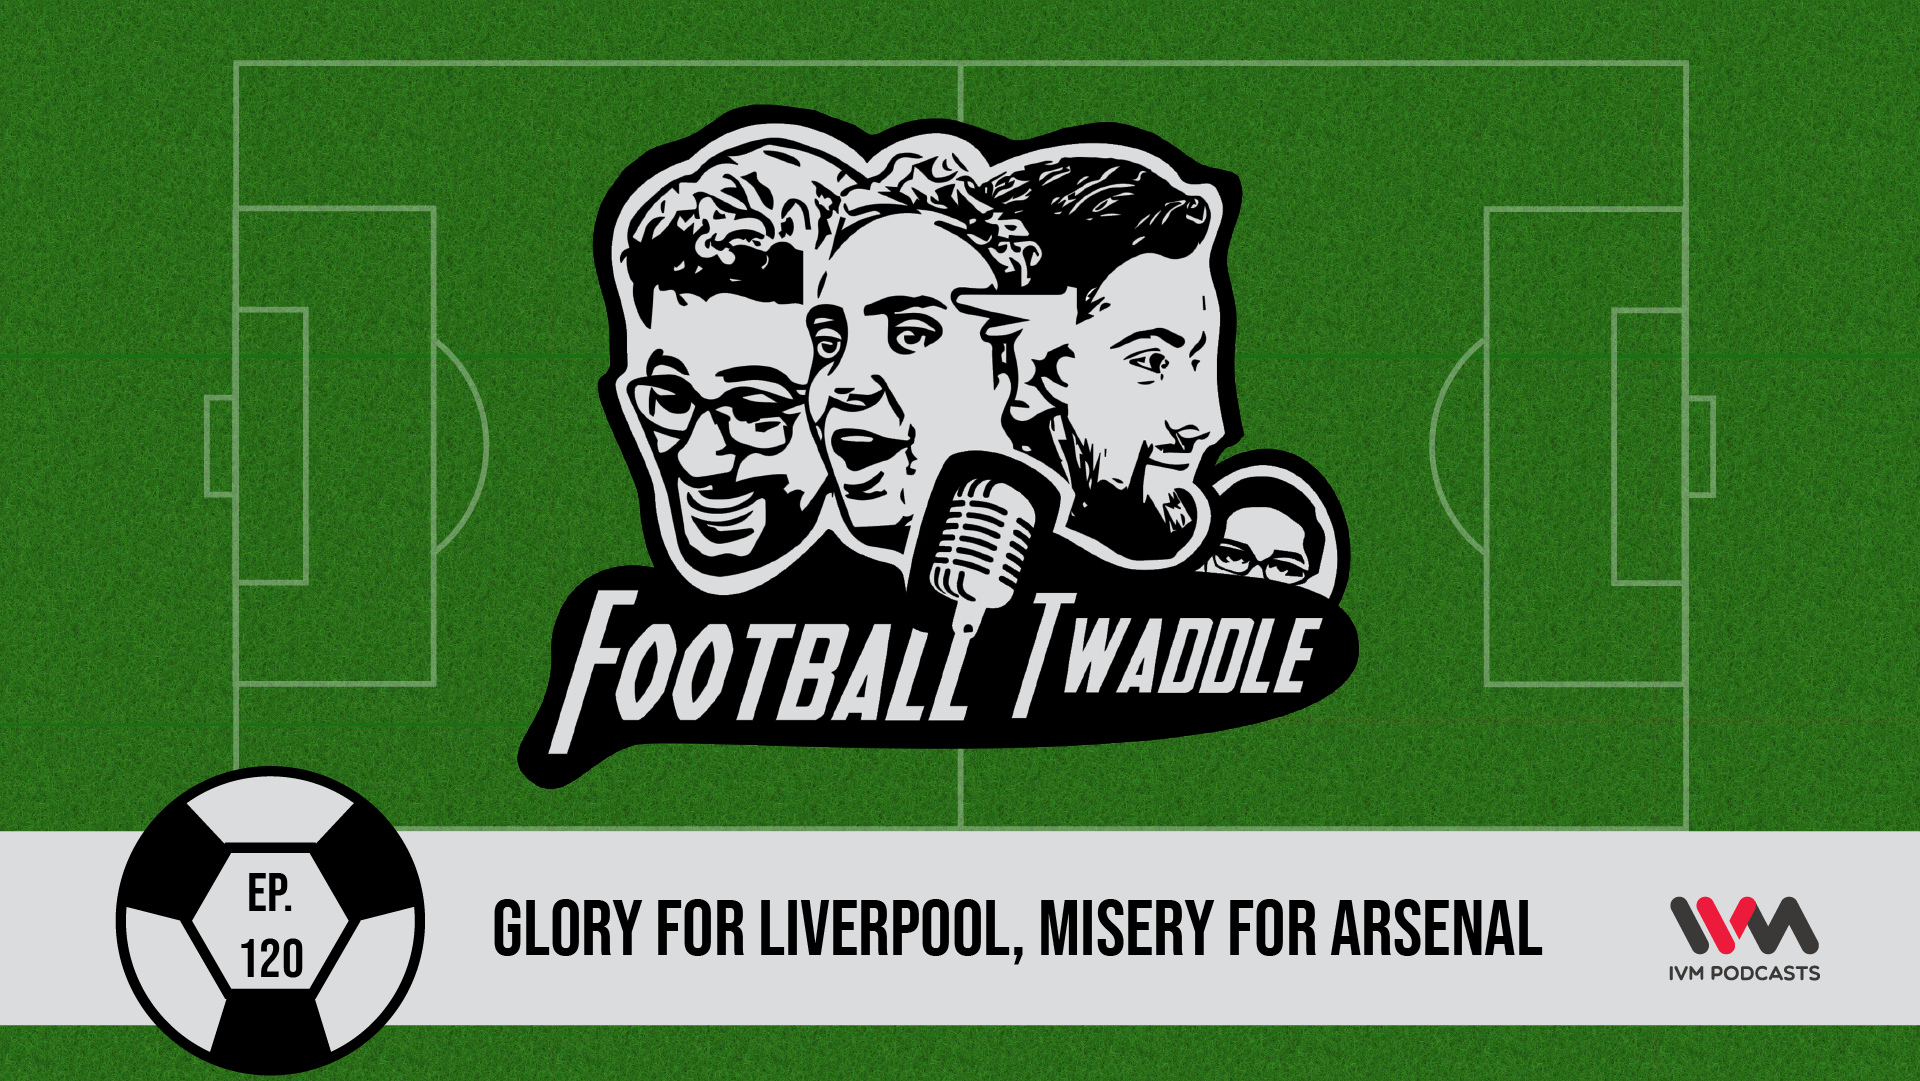 FootballTwaddleEpisode120.png